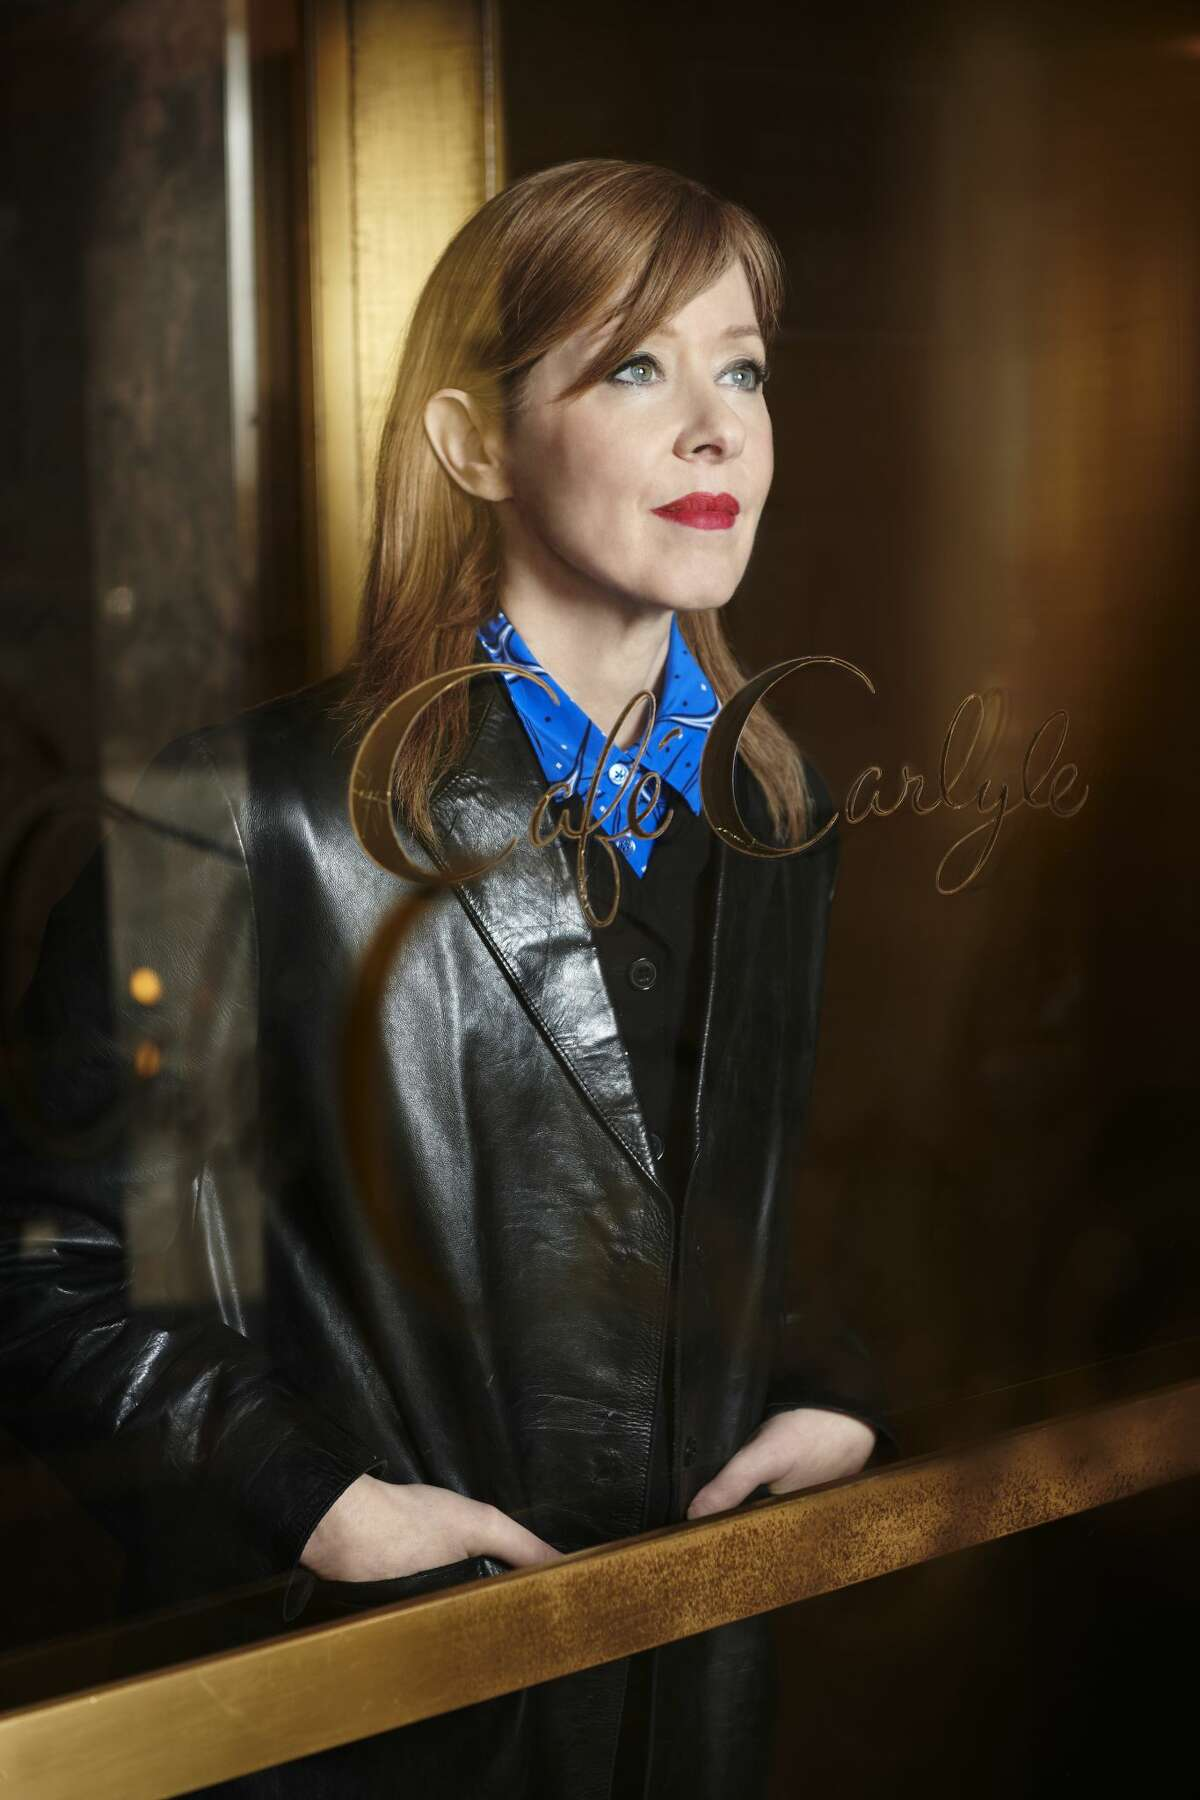 The iconic Suzanne Vega will bring her show, An Evening of New York Songs and Stories, to The Ridgefield Playhouse on Thursday, Oct. 21.